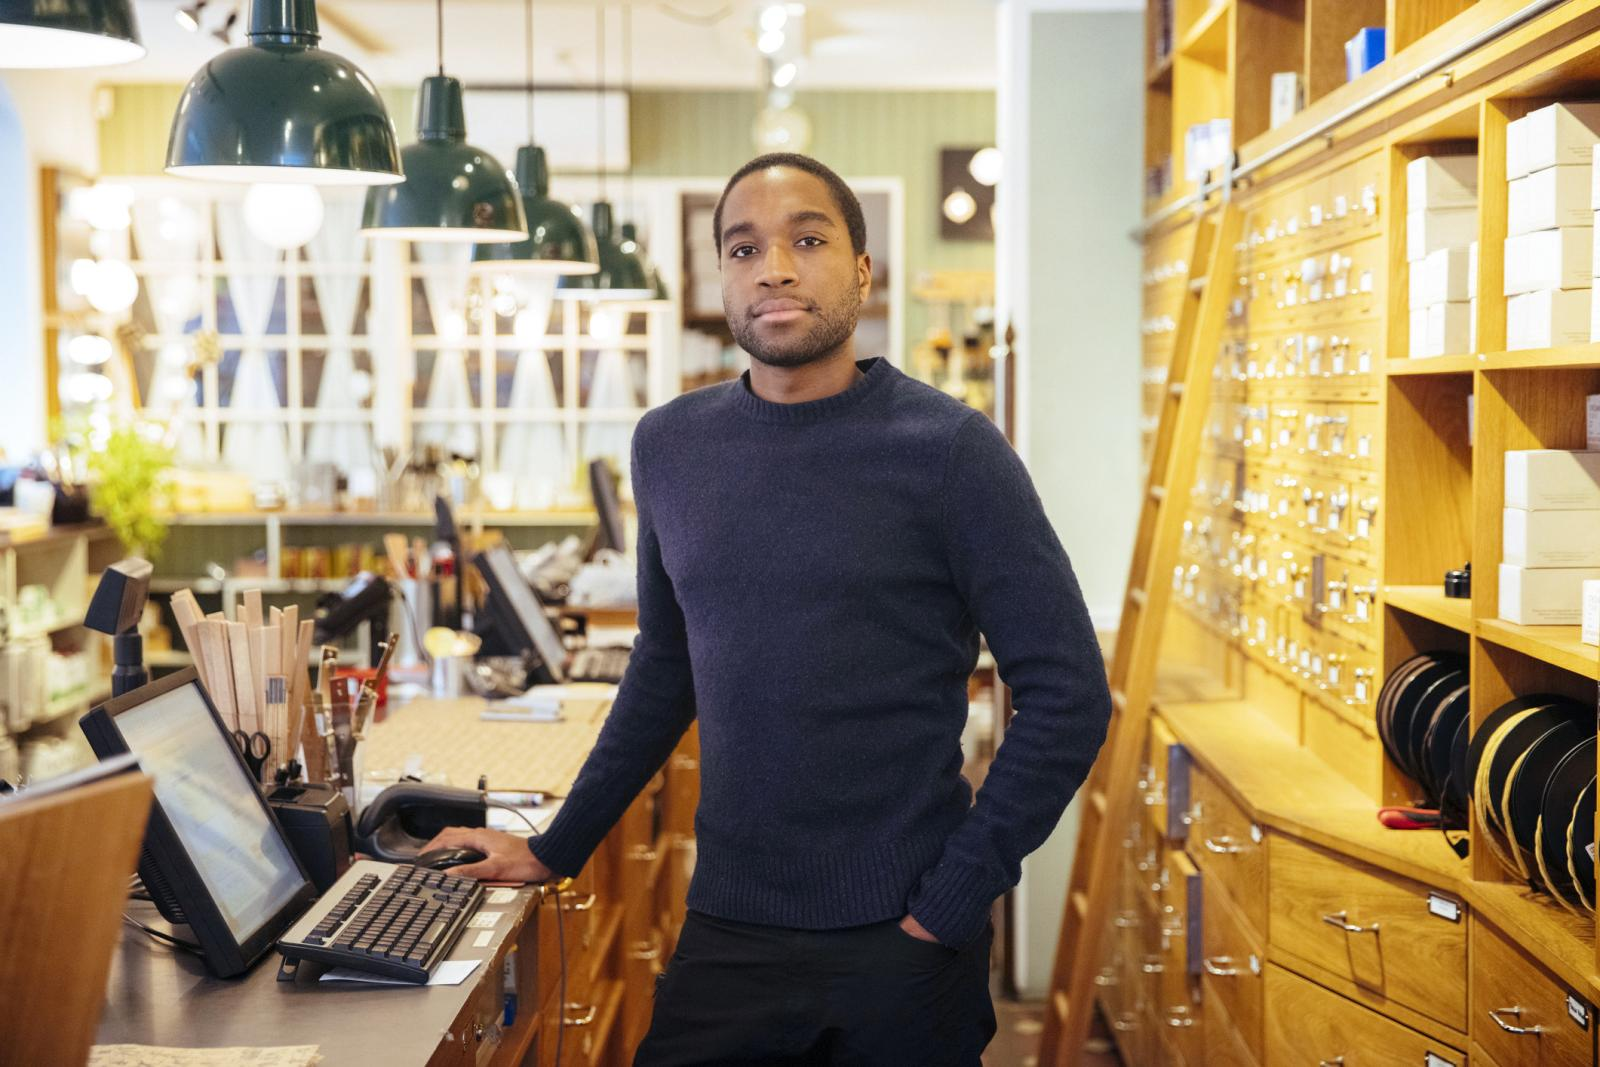 Confident young male entrepreneur standing behind store counter